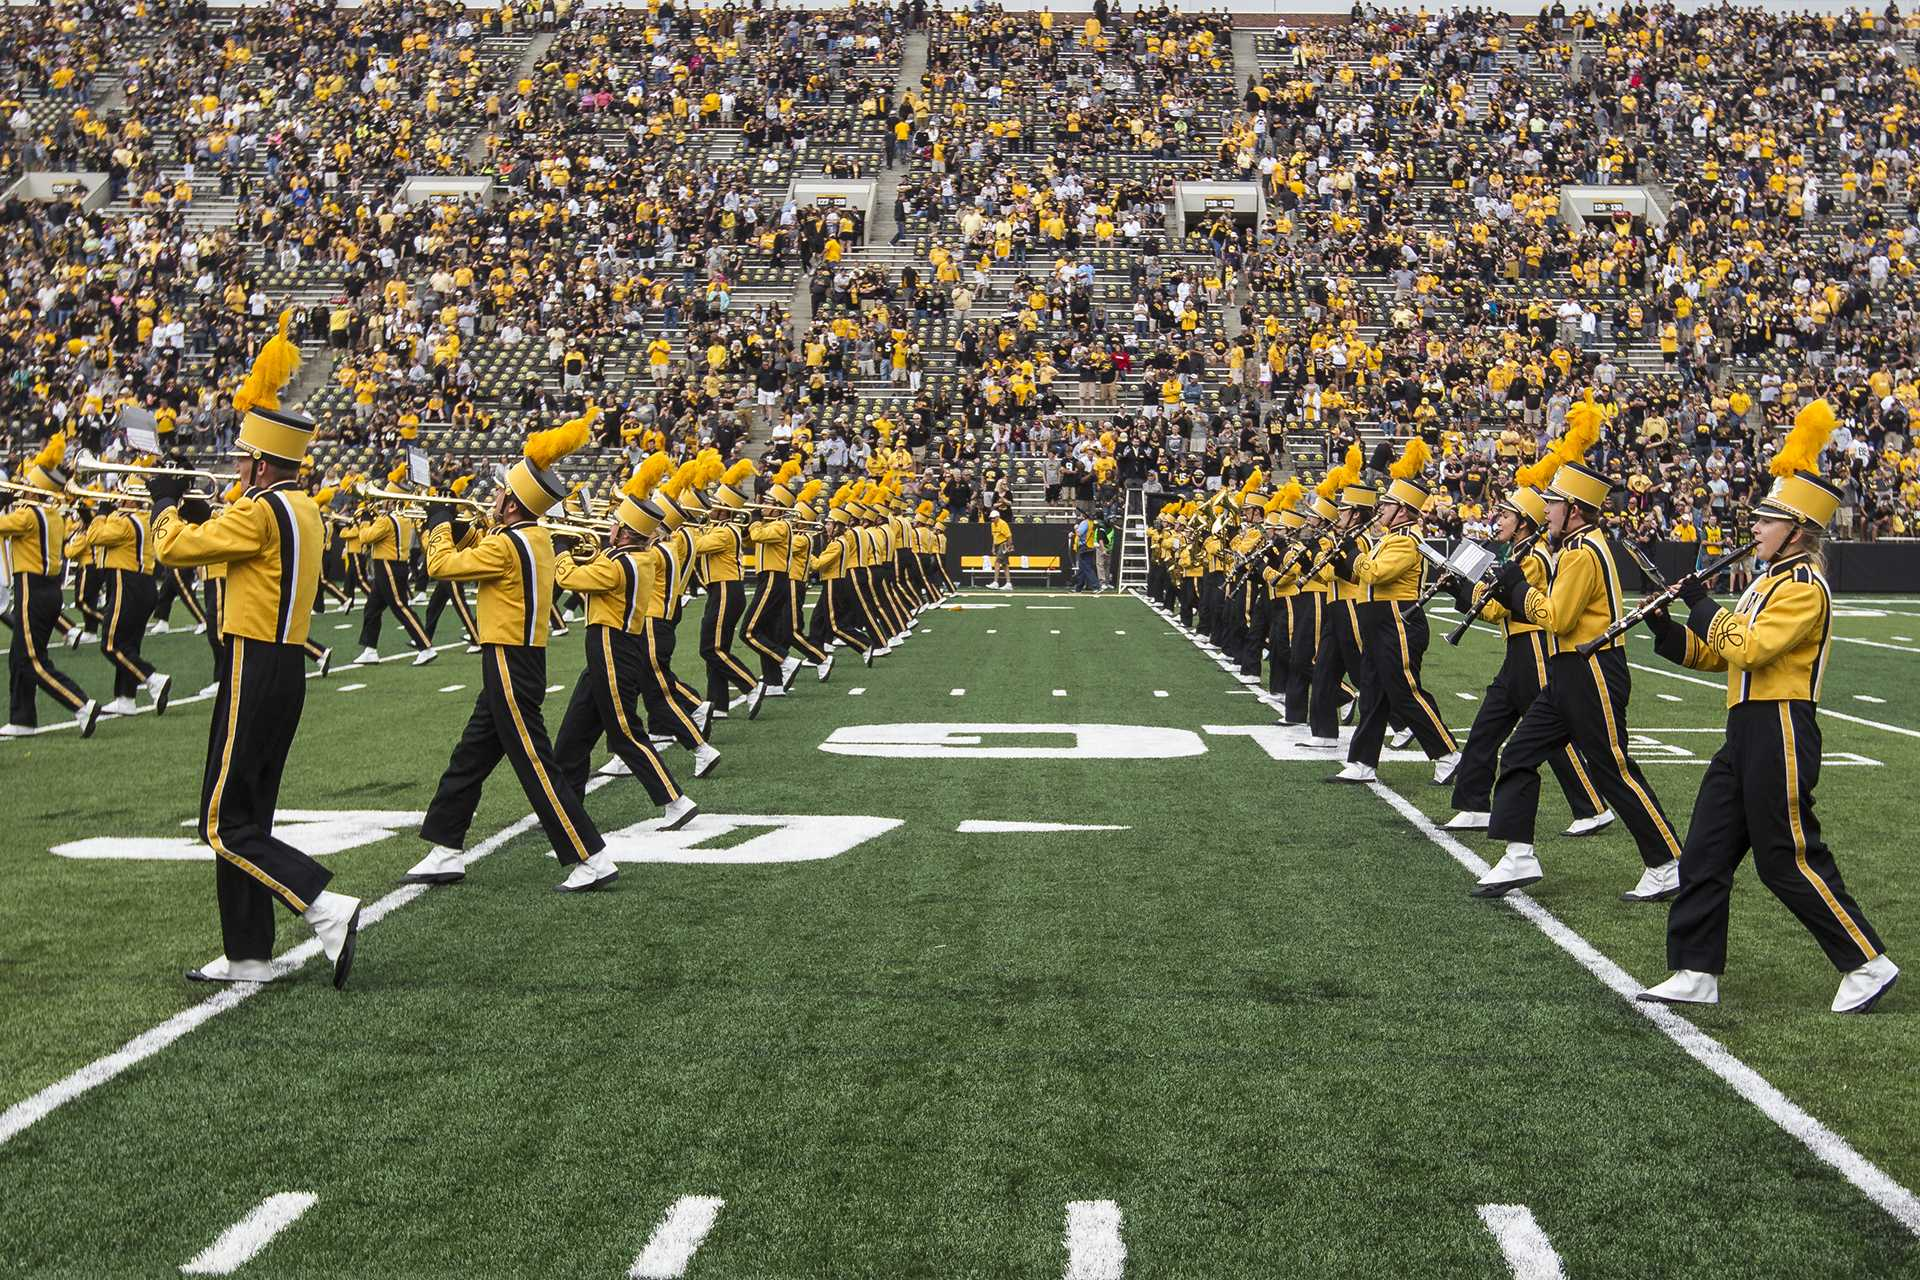 The Hawkeye Marching Band performs during halftime at the season opener against Wyoming on Saturday, Sep. 2, 2017. The Hawkeyes went on to defeat the Cowboys, 24-3. (Ben Smith/The Daily Iowan)